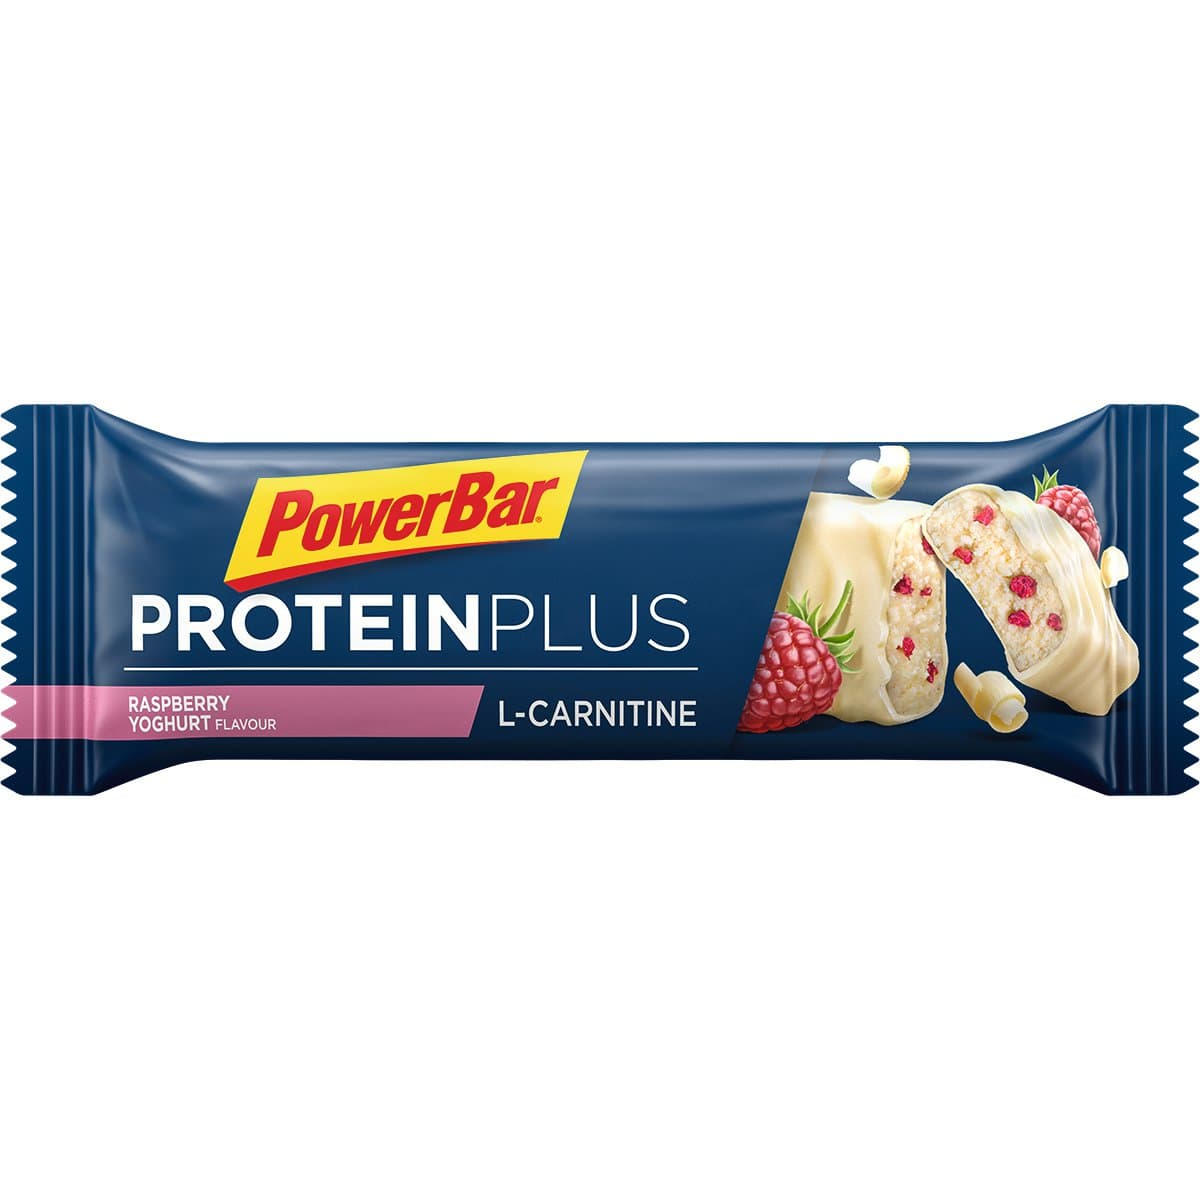 Powerbar Protein Plus L-Carnitin Riegel Himbeer Barre